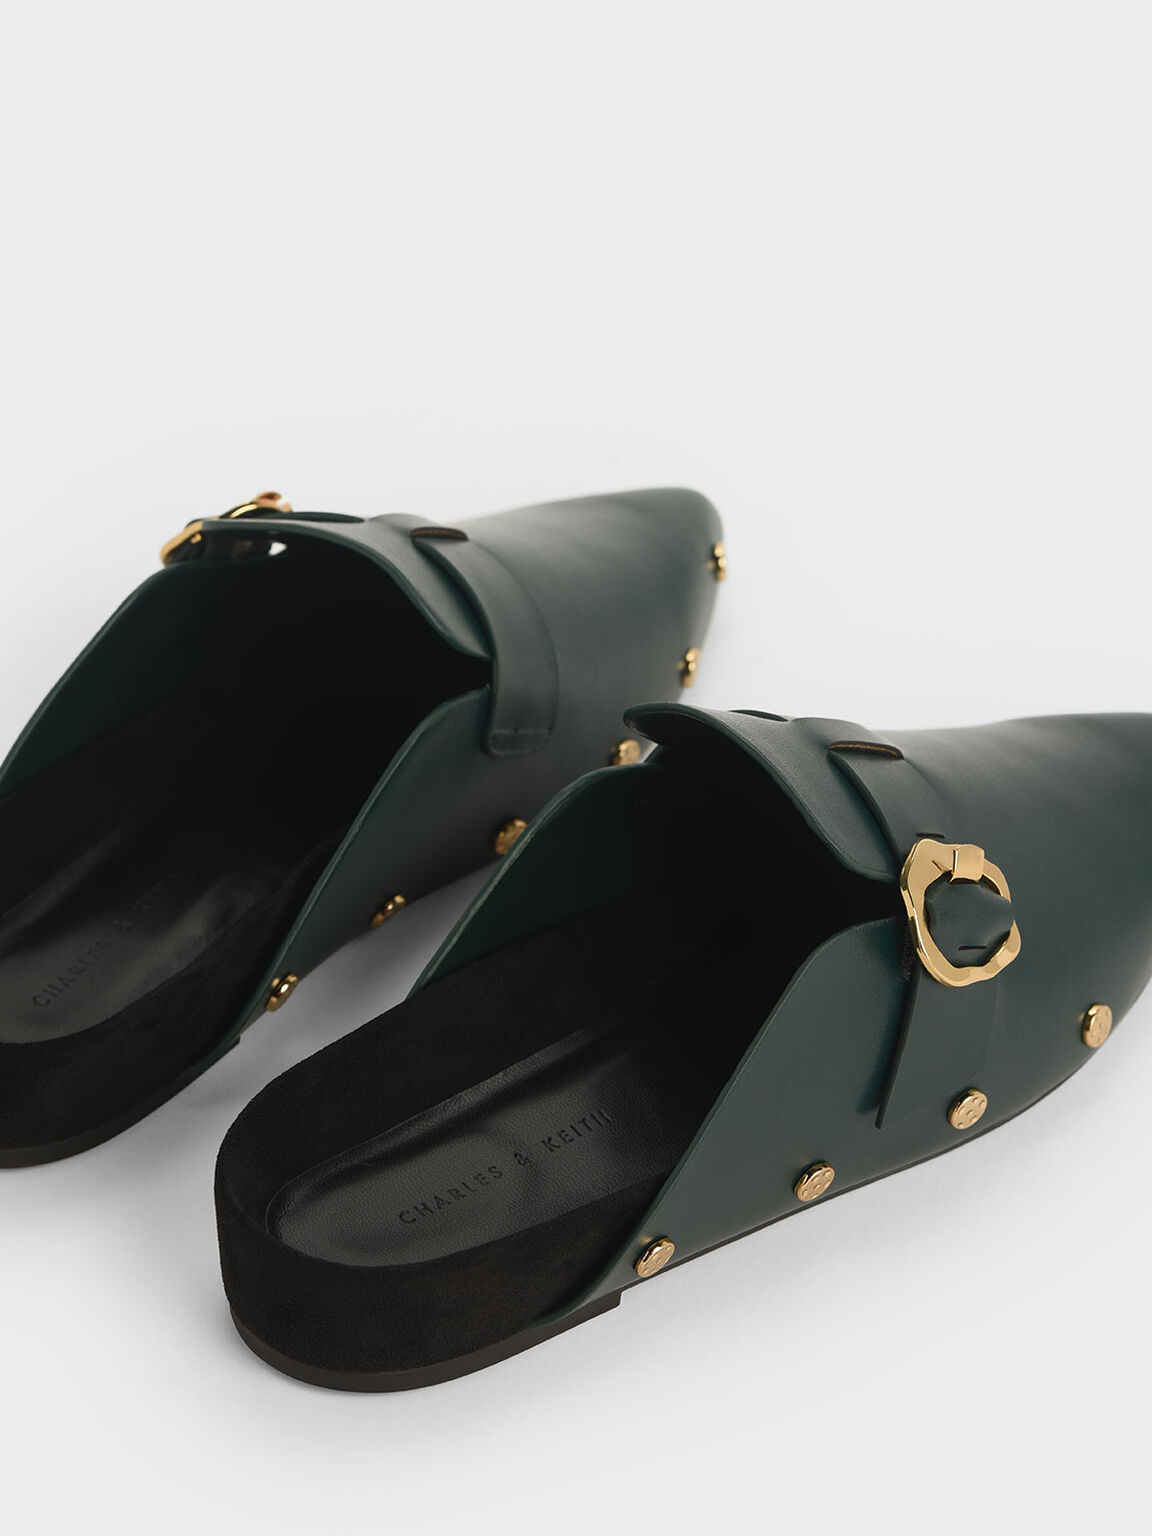 Hammered Buckle Stud Trim Mules, Dark Green, hi-res